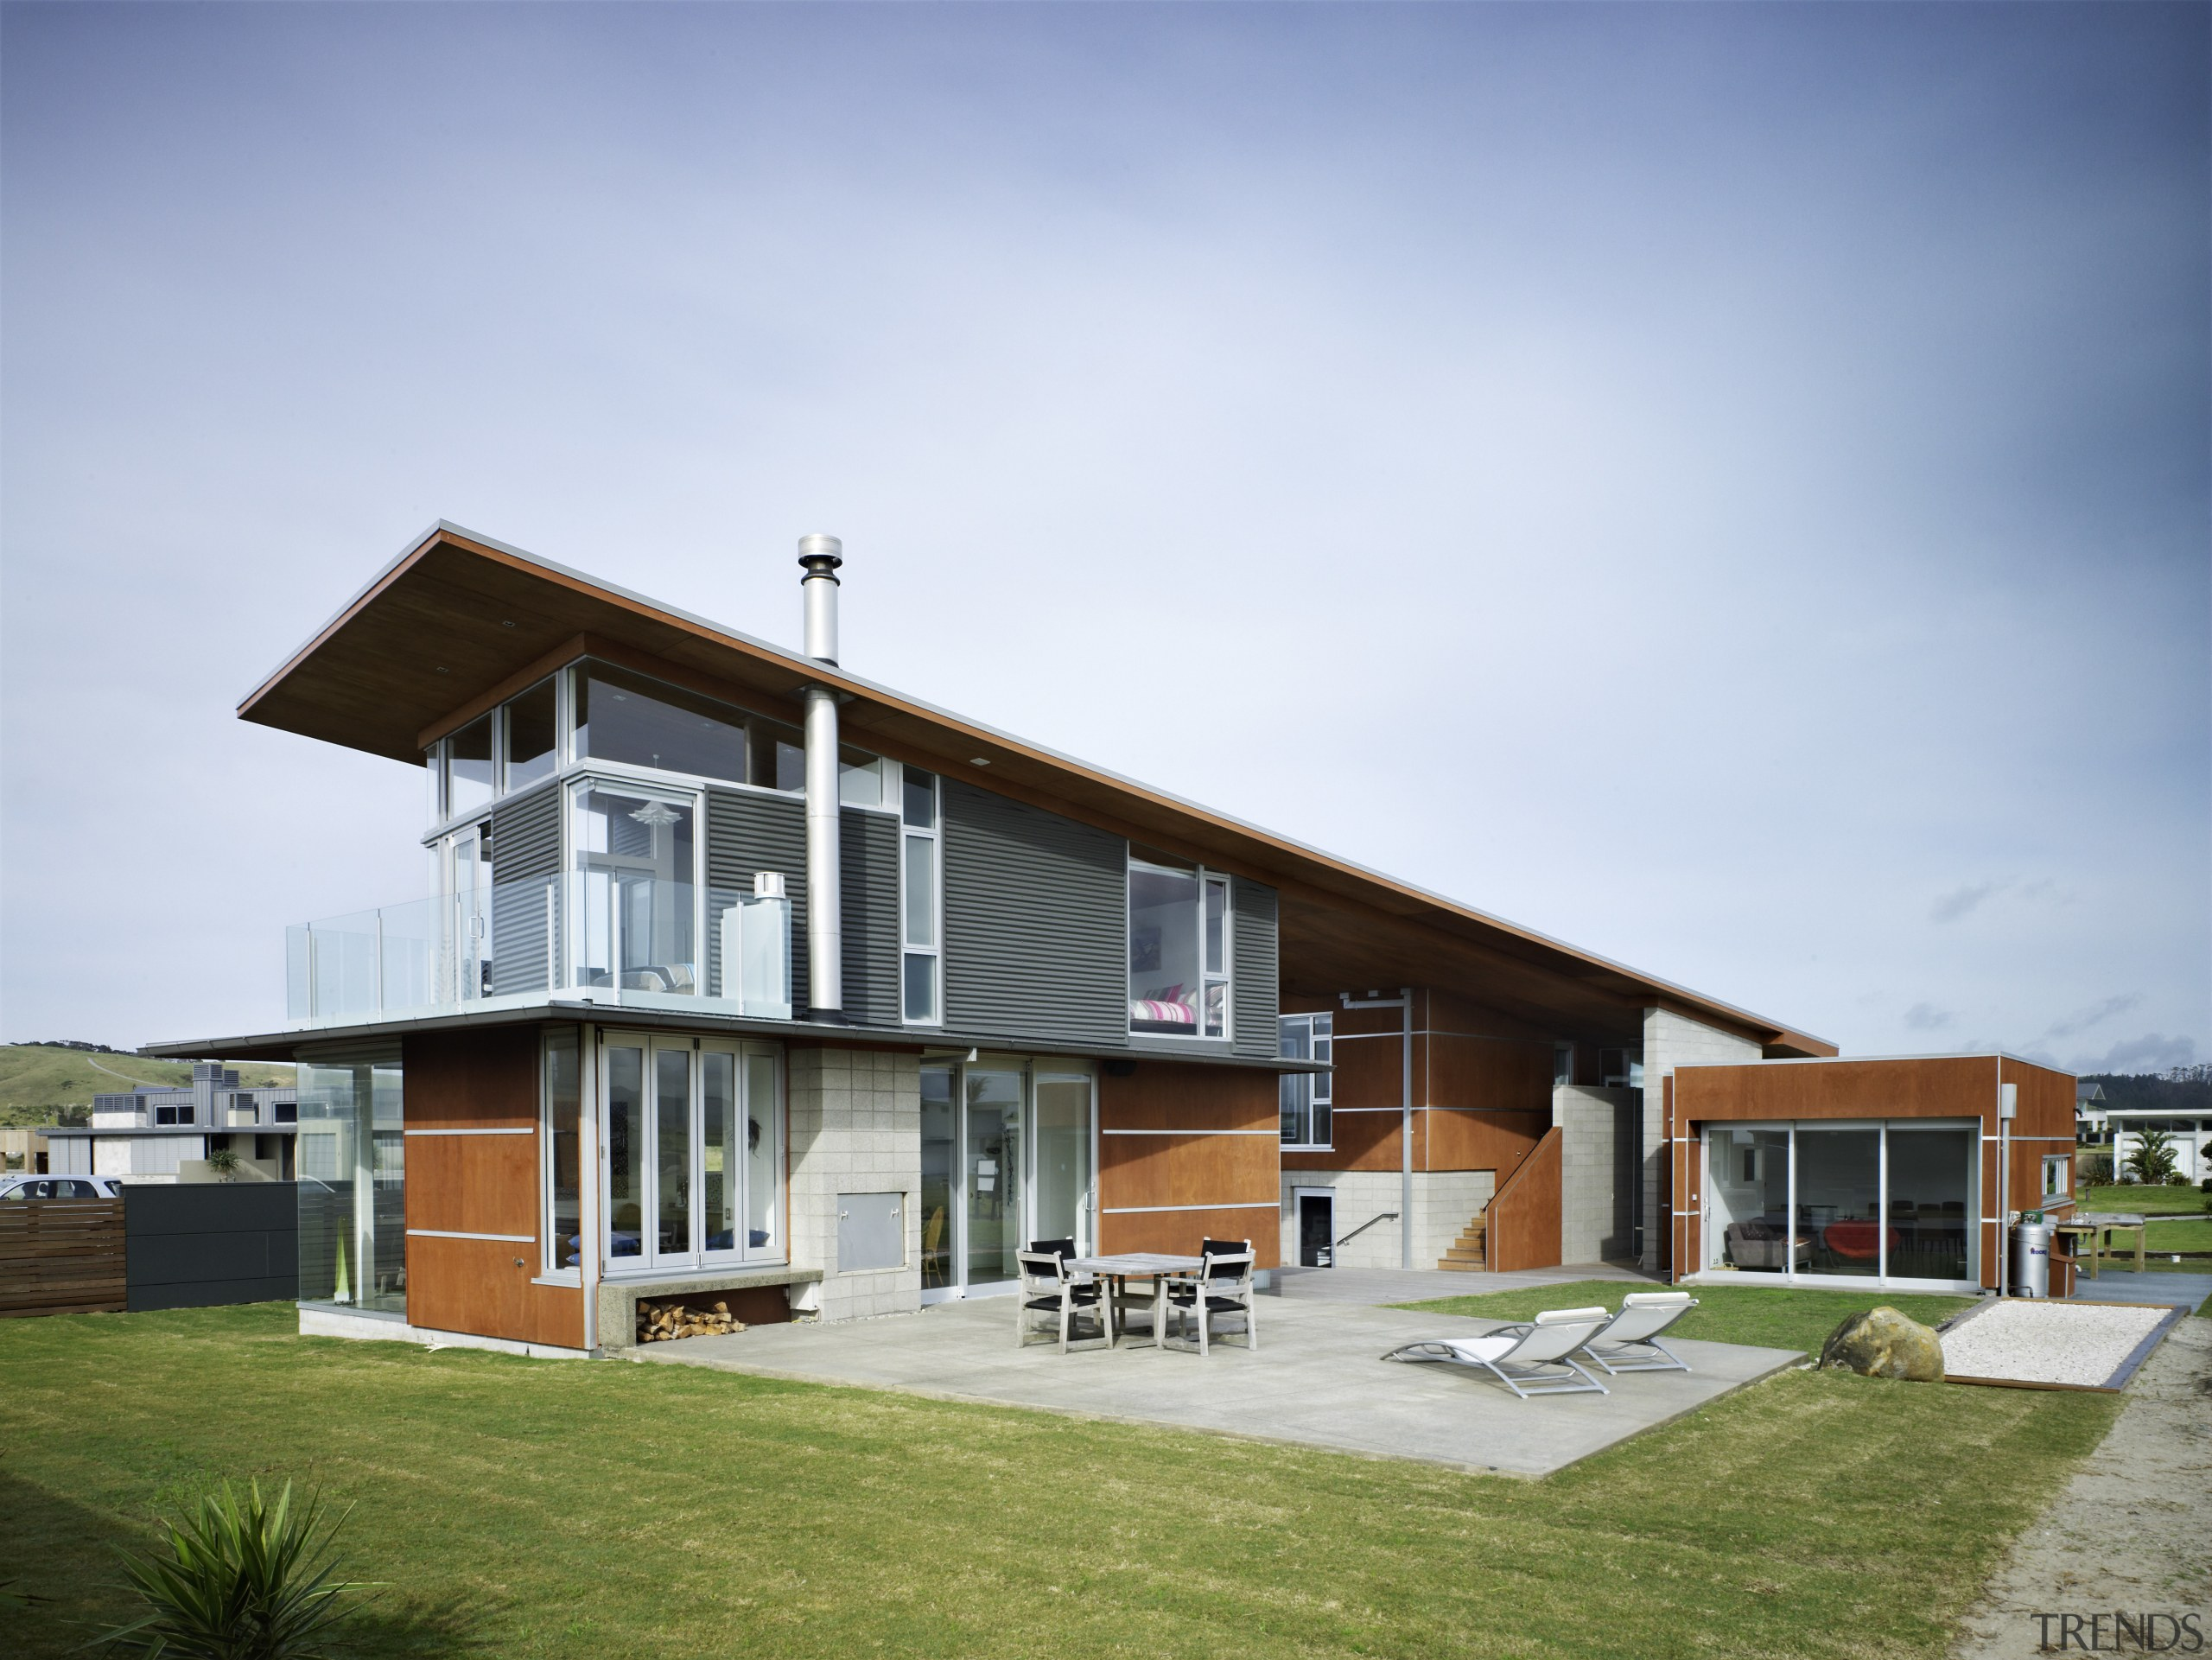 The Shadowclad cladding and bracing system sets off architecture, building, cottage, elevation, estate, facade, farmhouse, home, house, property, real estate, residential area, sky, white